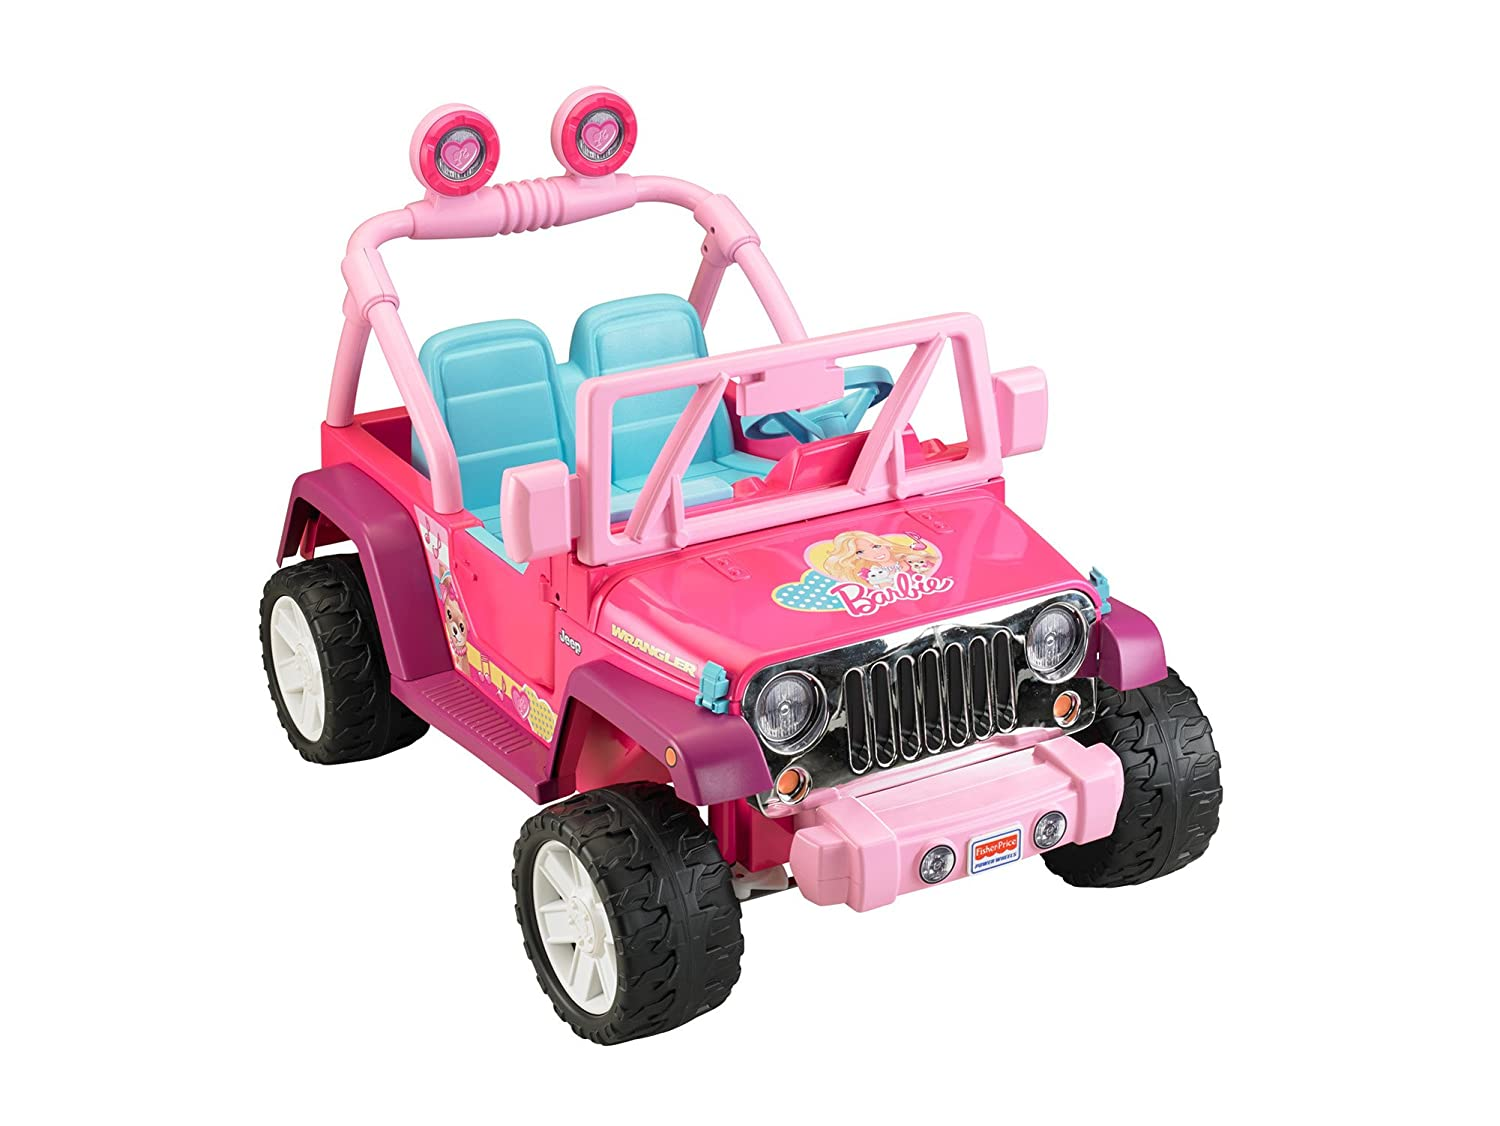 Toy Cars For Girls : Pink barbie jeep wrangler girls ride on outdoor toy